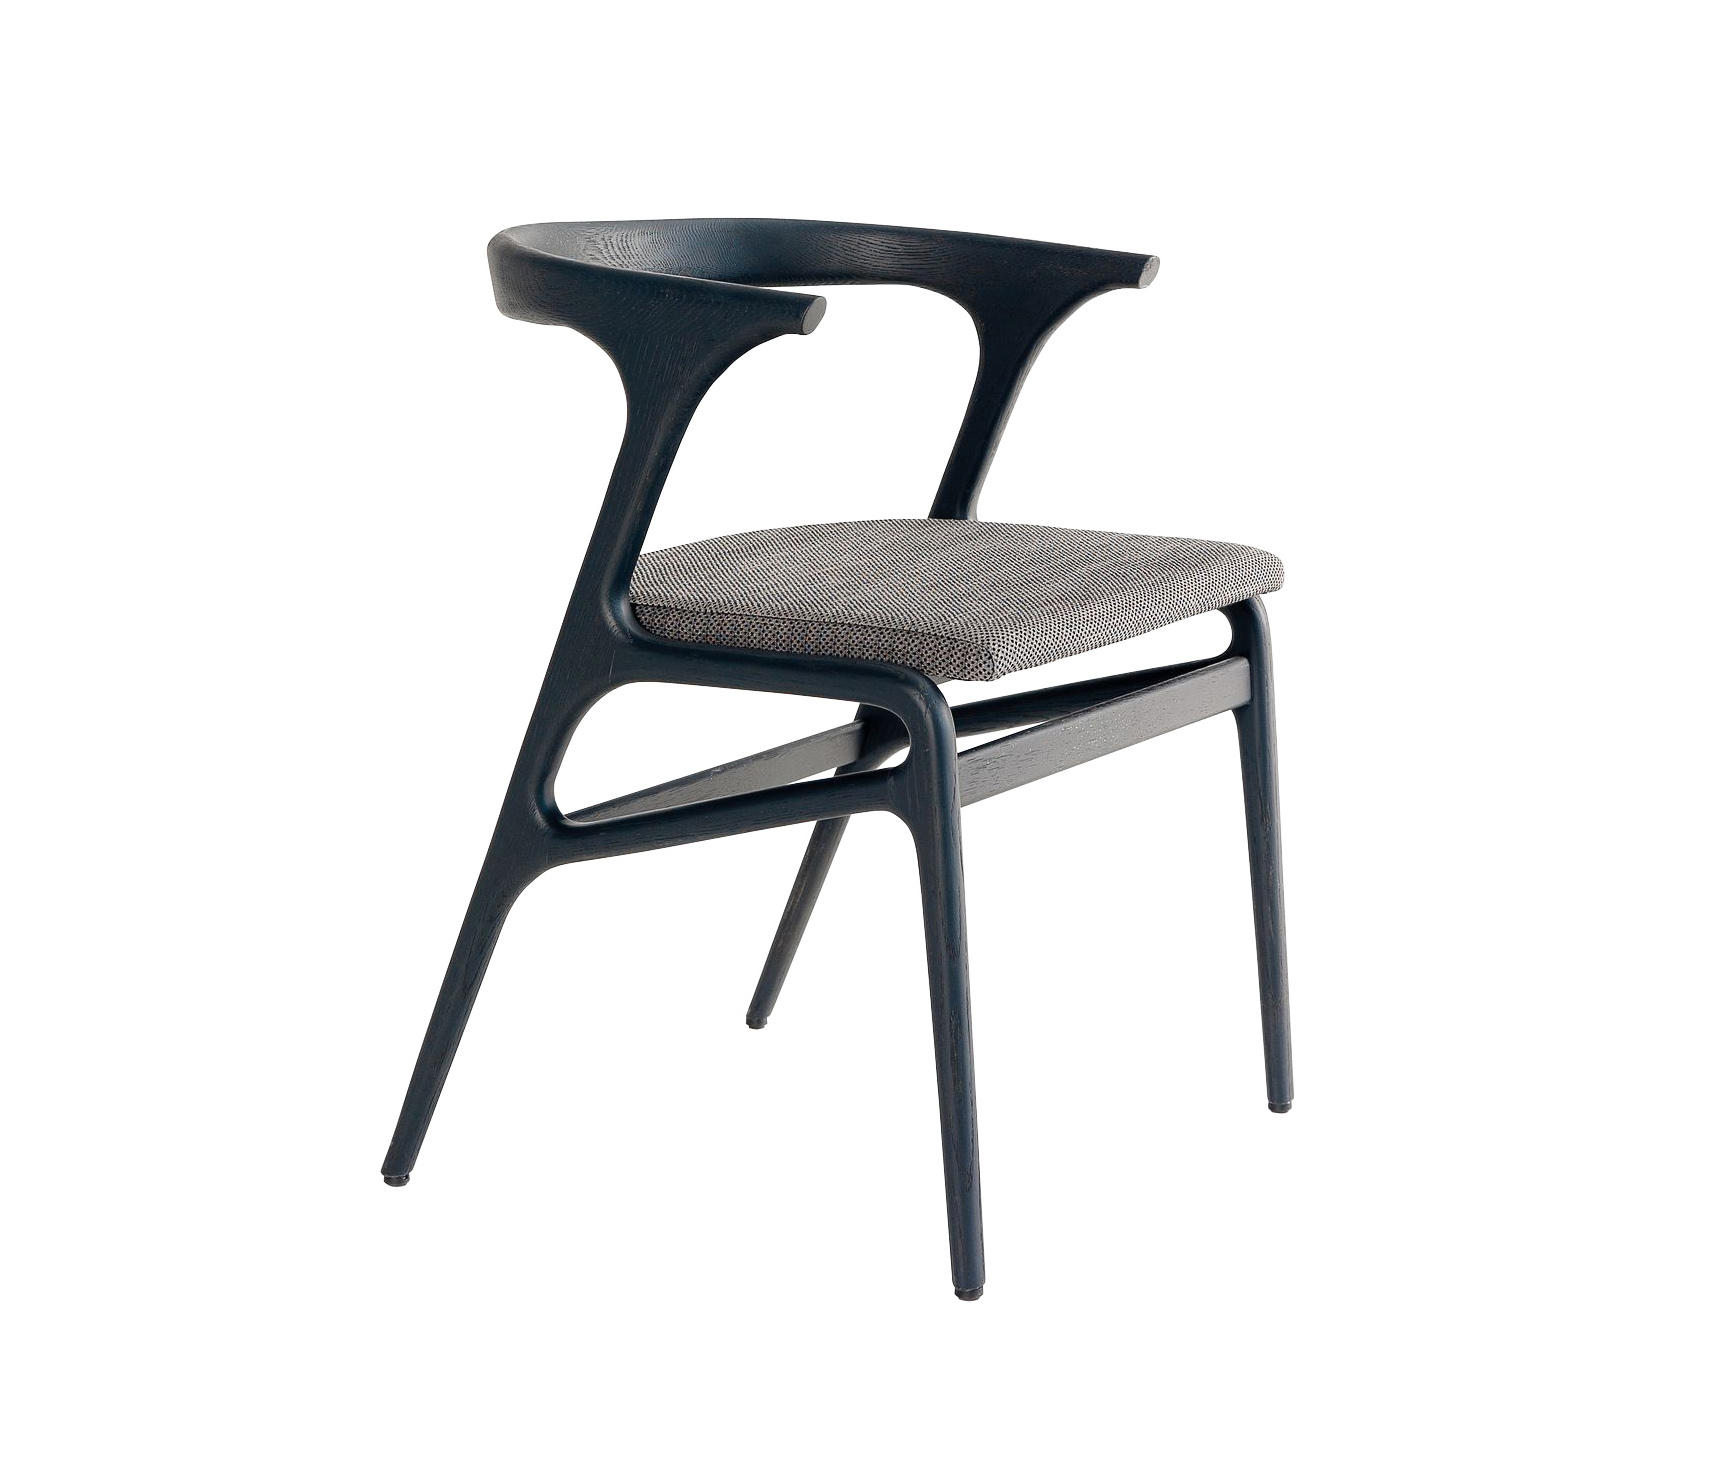 Kira Chair By MOBILFRESNO ALTERNATIVE | Visitors Chairs / Side Chairs ...